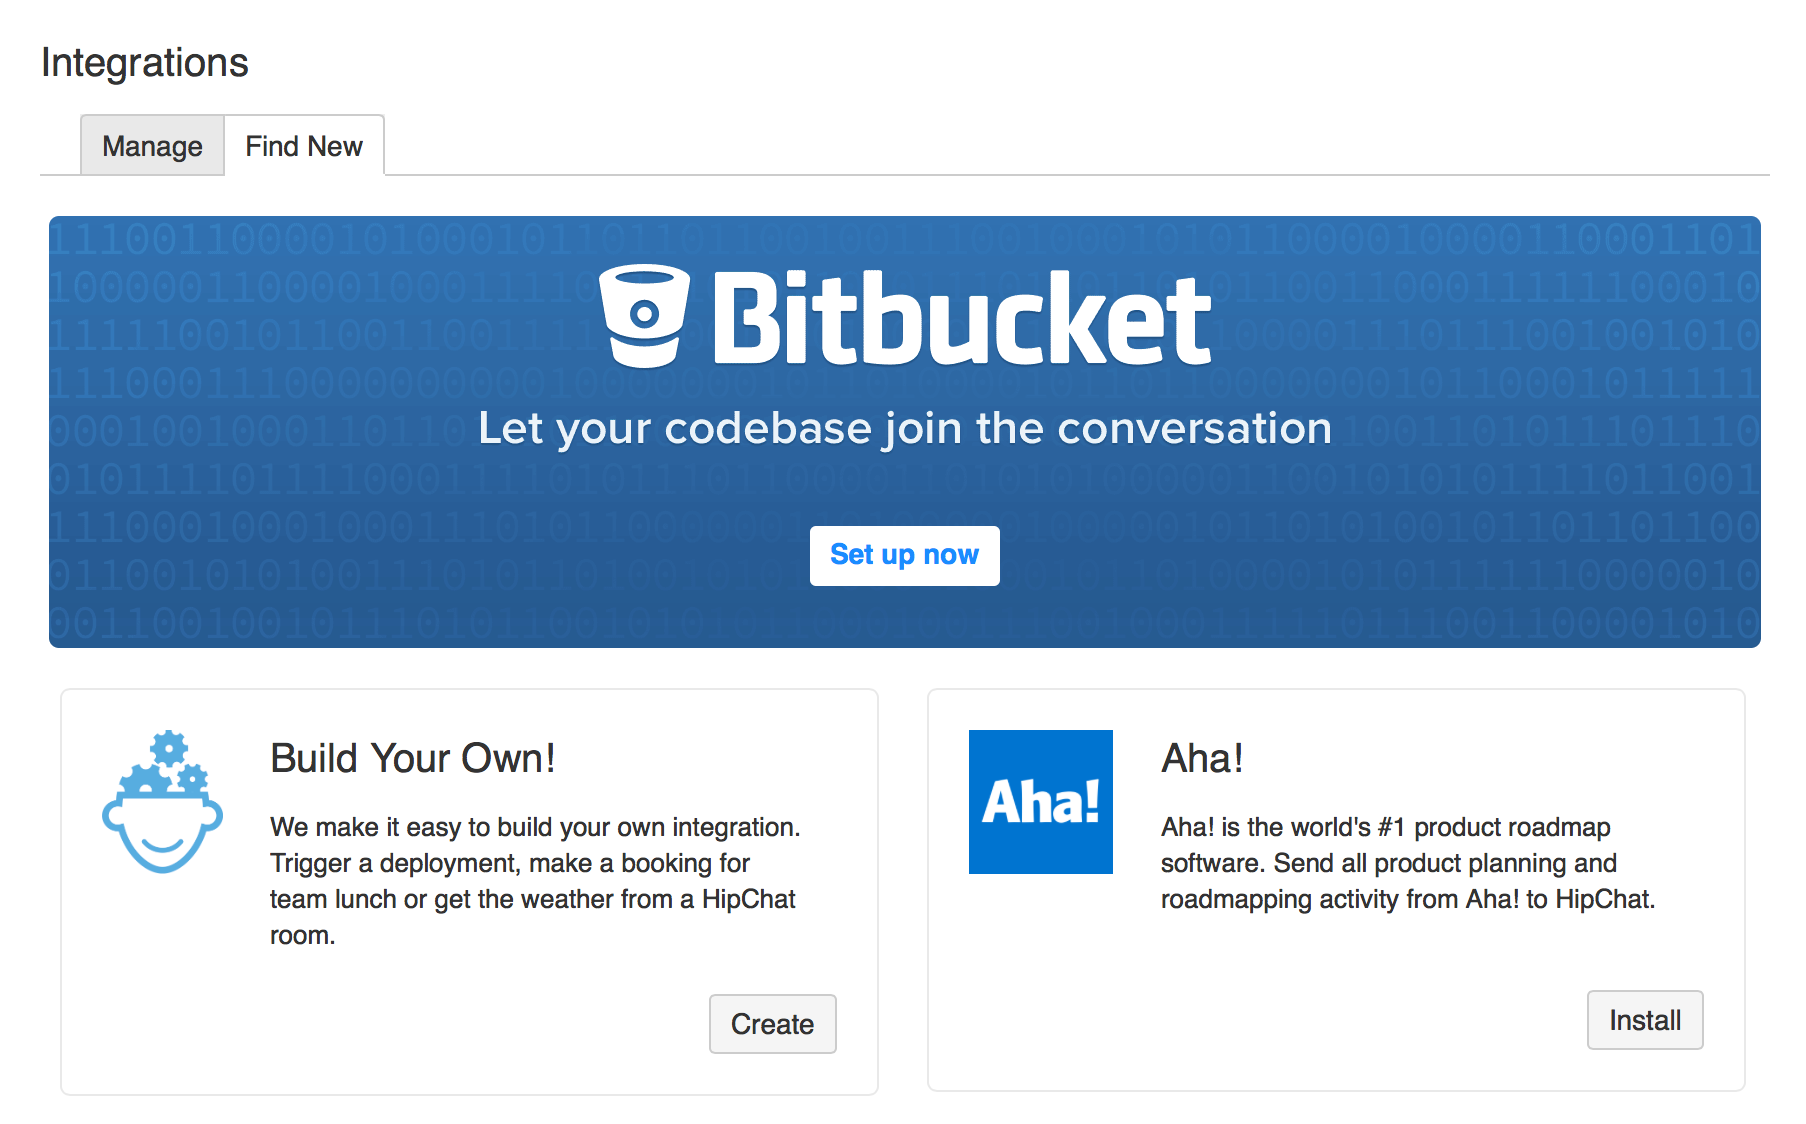 Integrating ServiceNow with HipChat ‹ TIL in ServiceNow